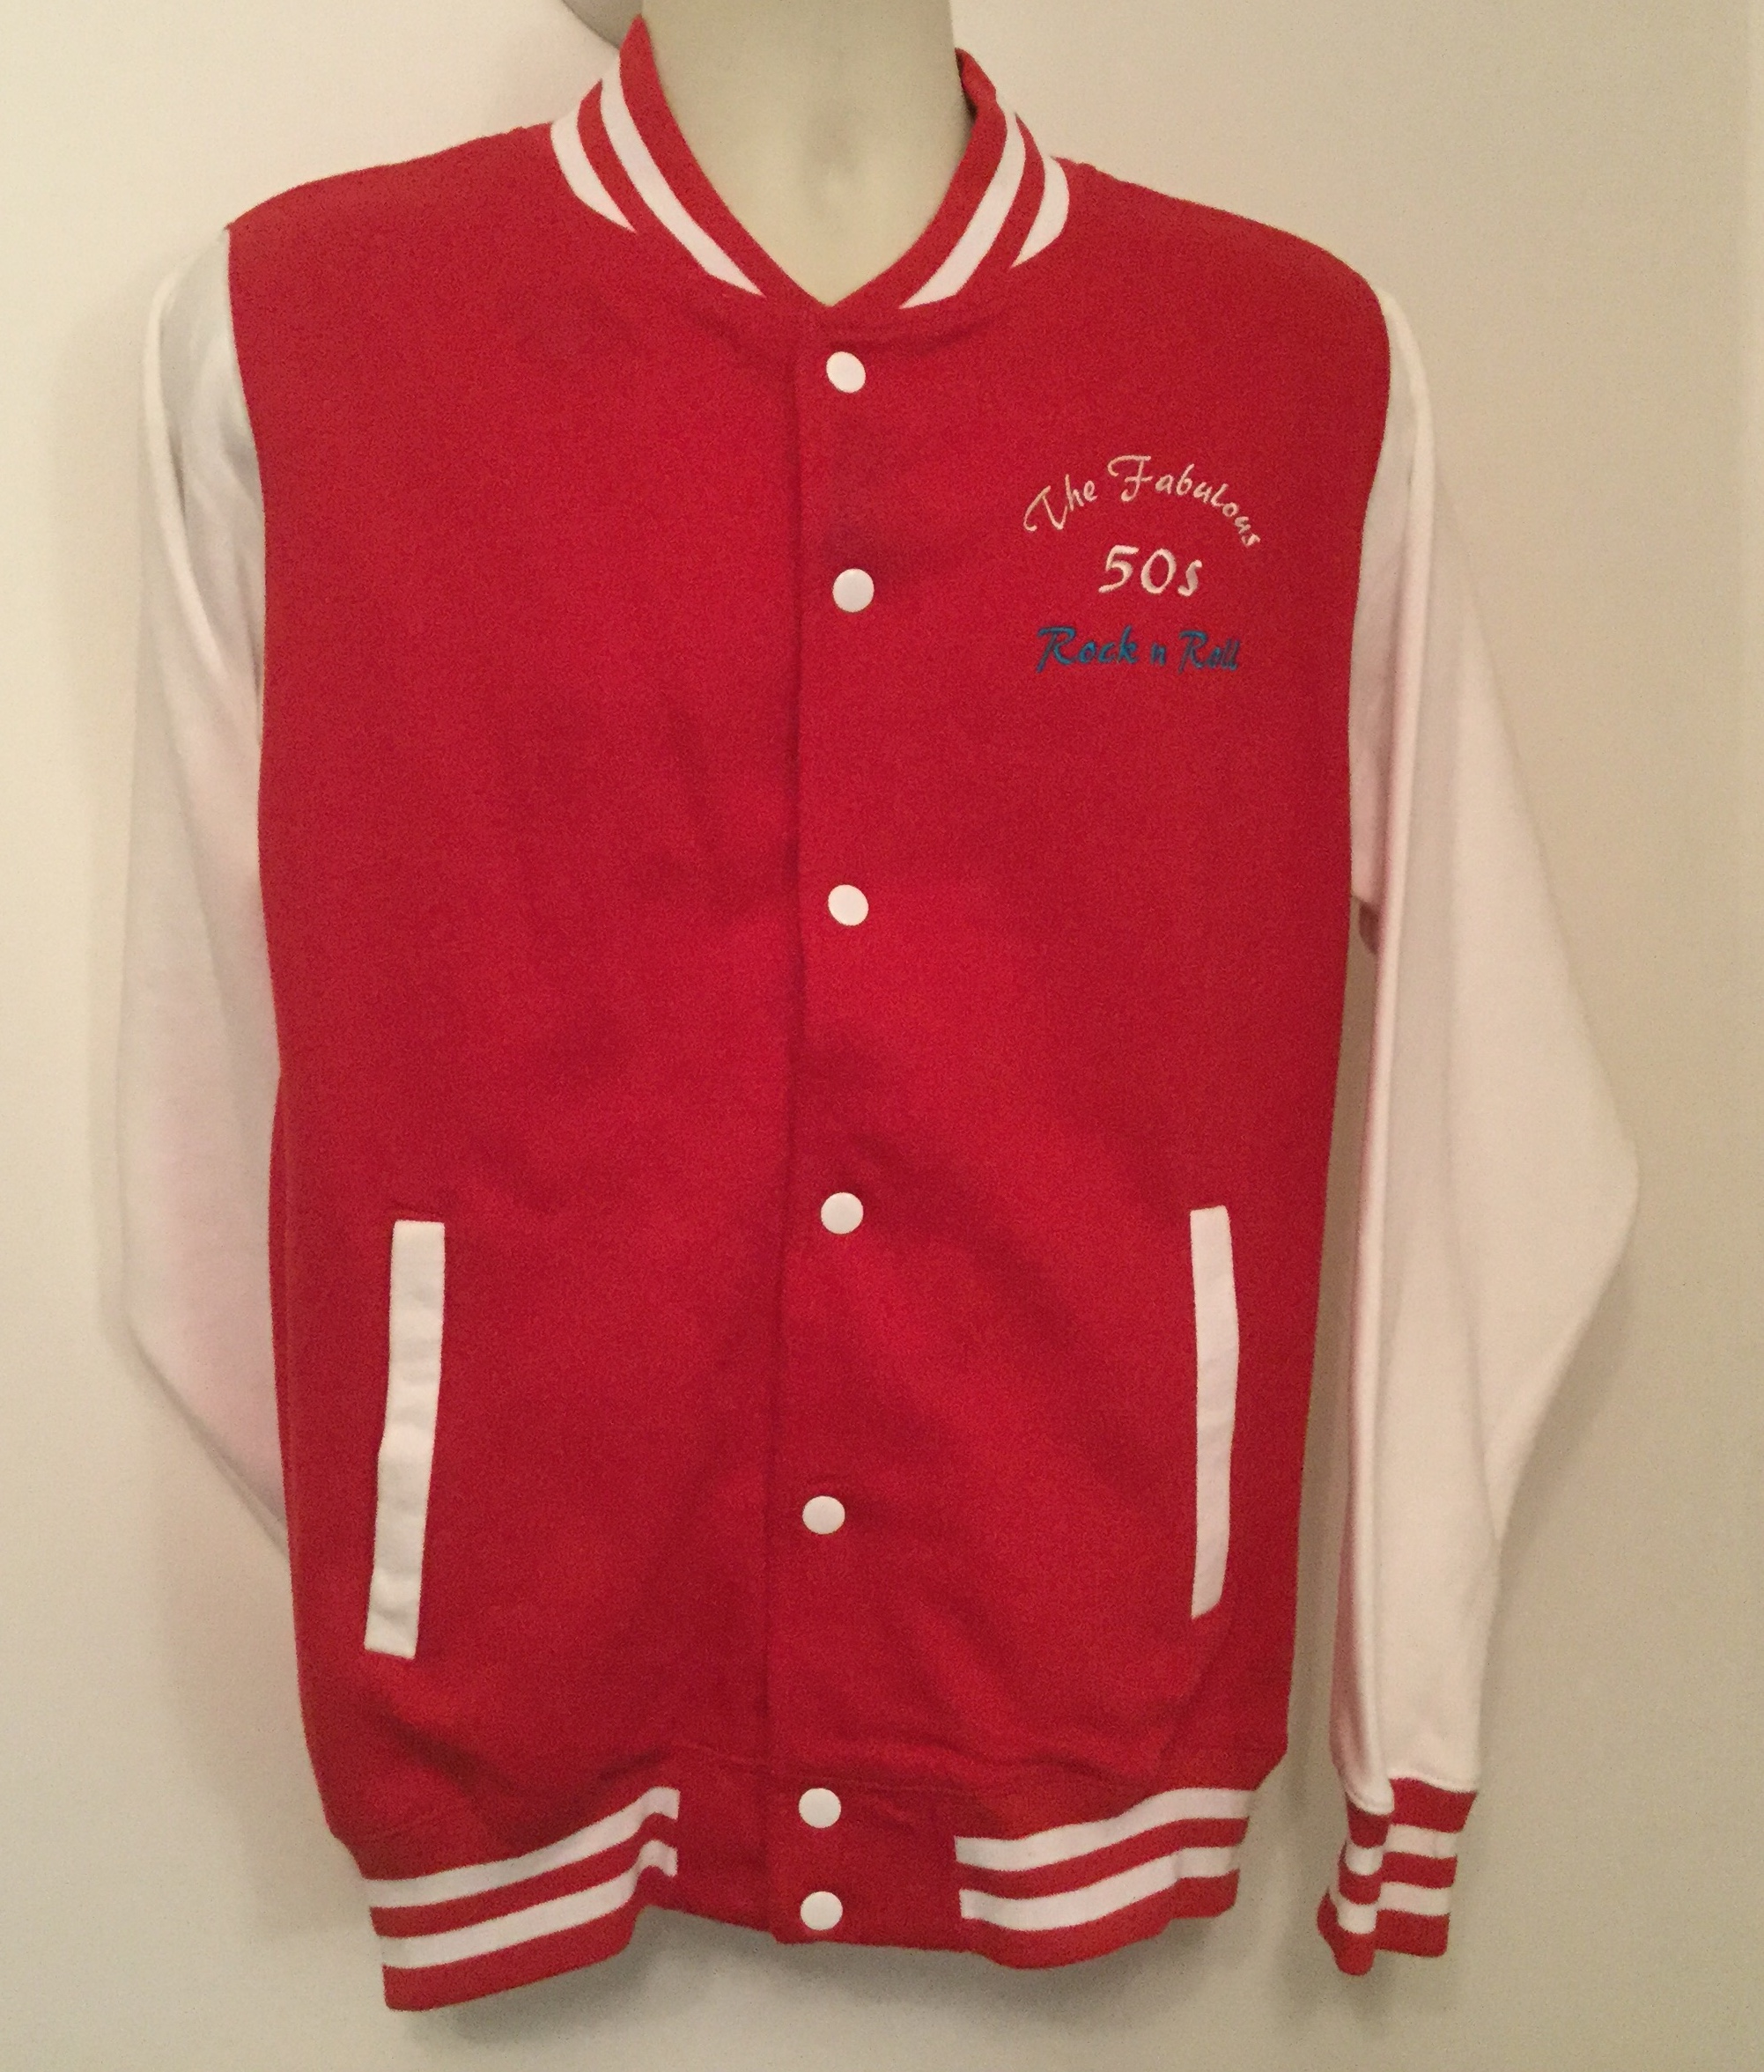 Sale-Unisex Varsity Jkt  Red/ White (Med)